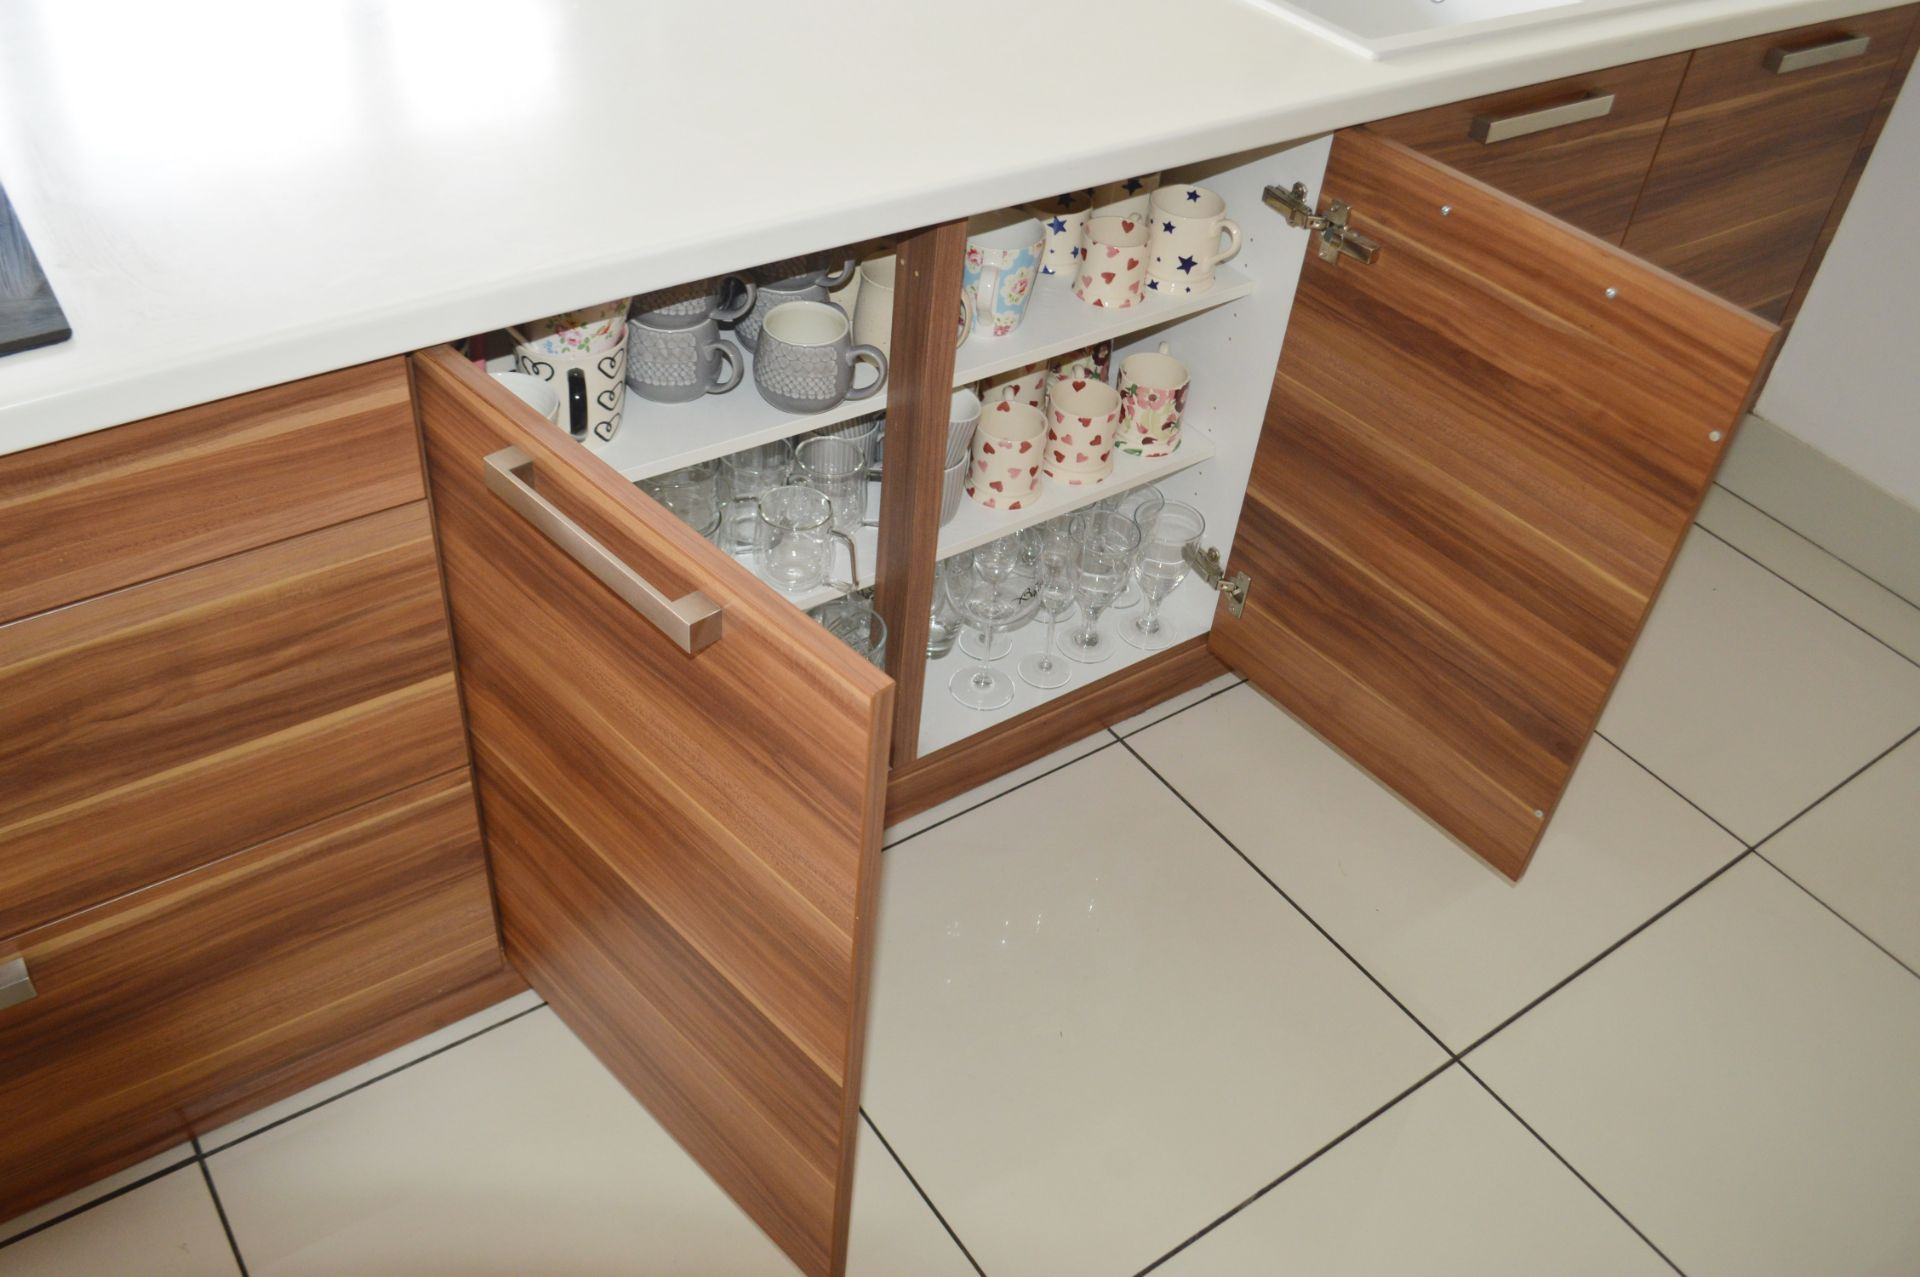 1 x Contemporary Bespoke Fitted Kitchen With Integrated Neff Branded Appliances, Quartz Worktops - Image 12 of 52